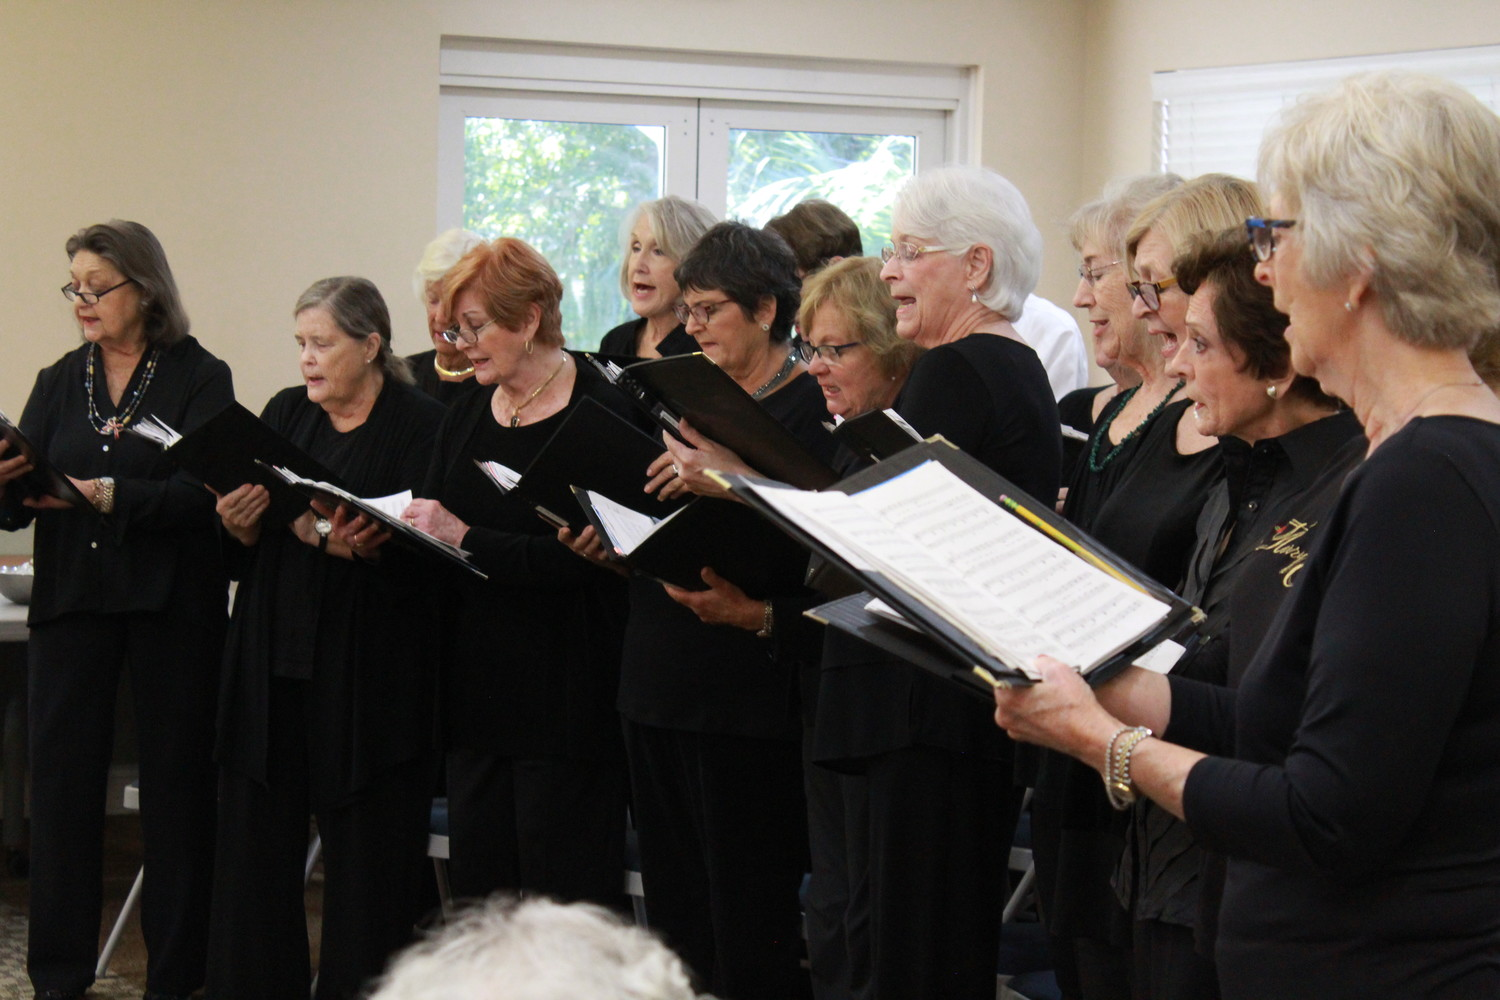 The Sawgrass Singers entertain seniors at THE PLAYERS Community Center.